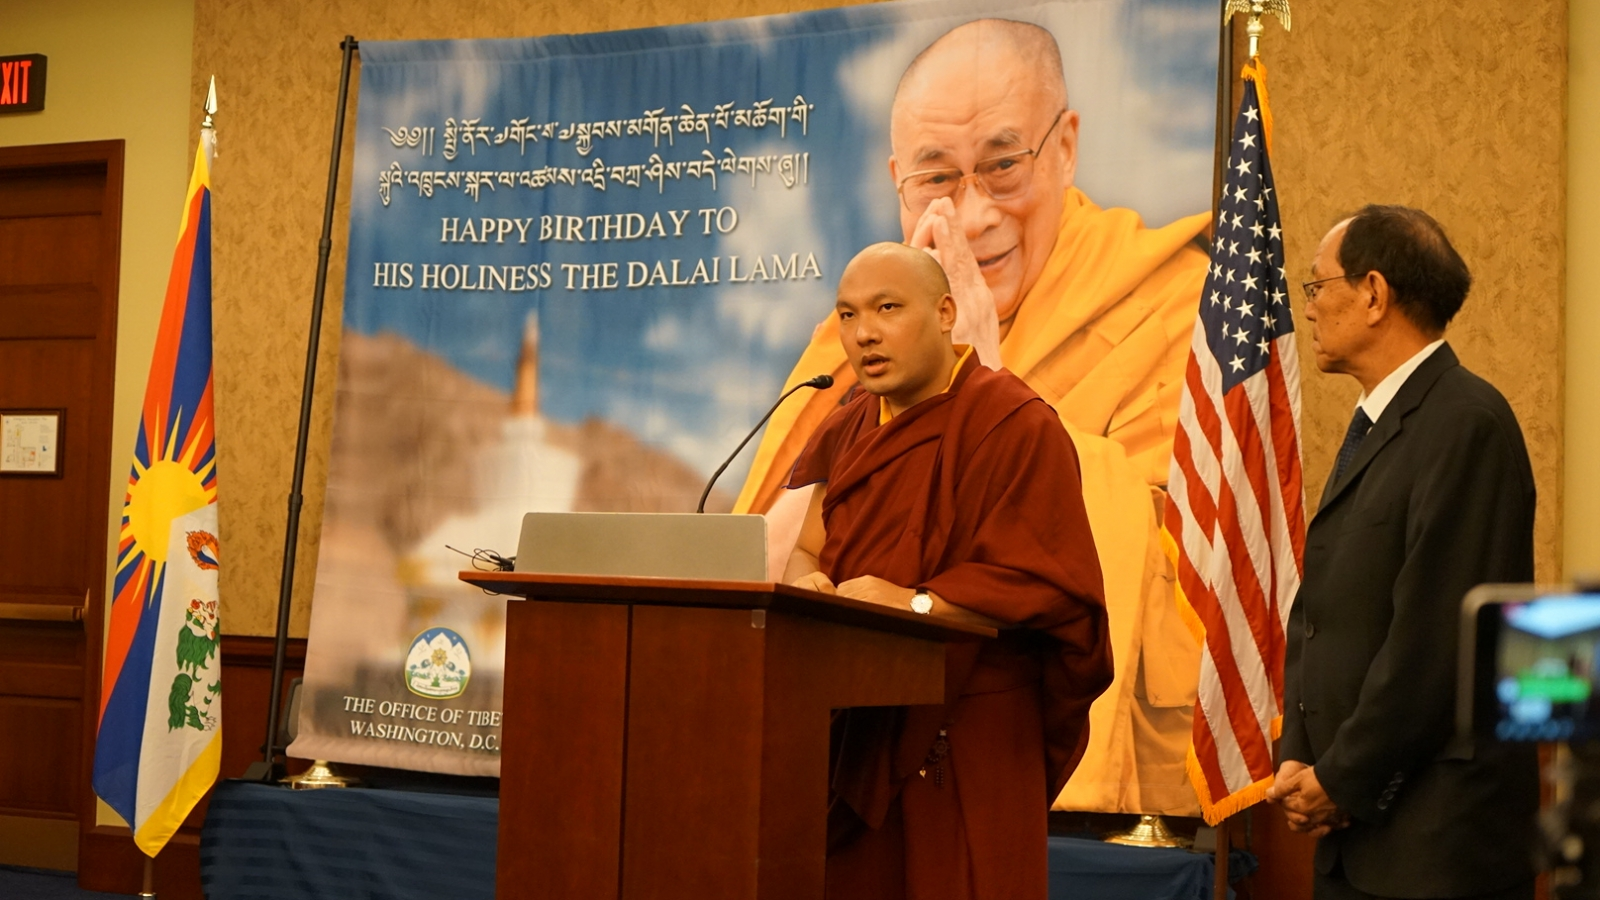 karmapa at dalai lamas birthday